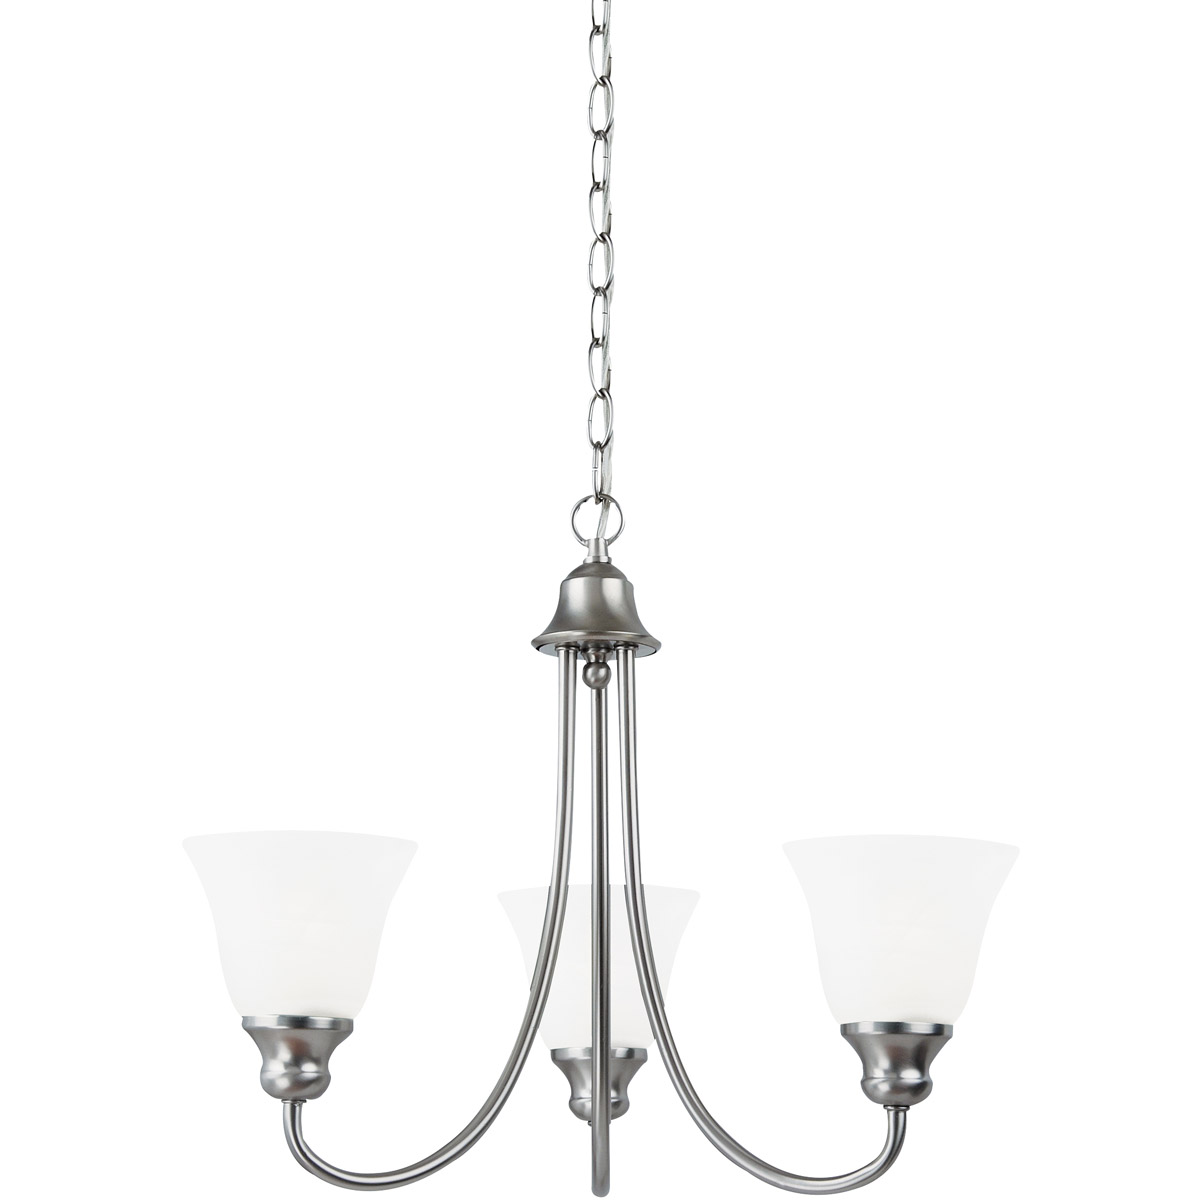 Sea Gull Lighting Windgate 3 Light Chandelier in Brushed Nickel 35939-962